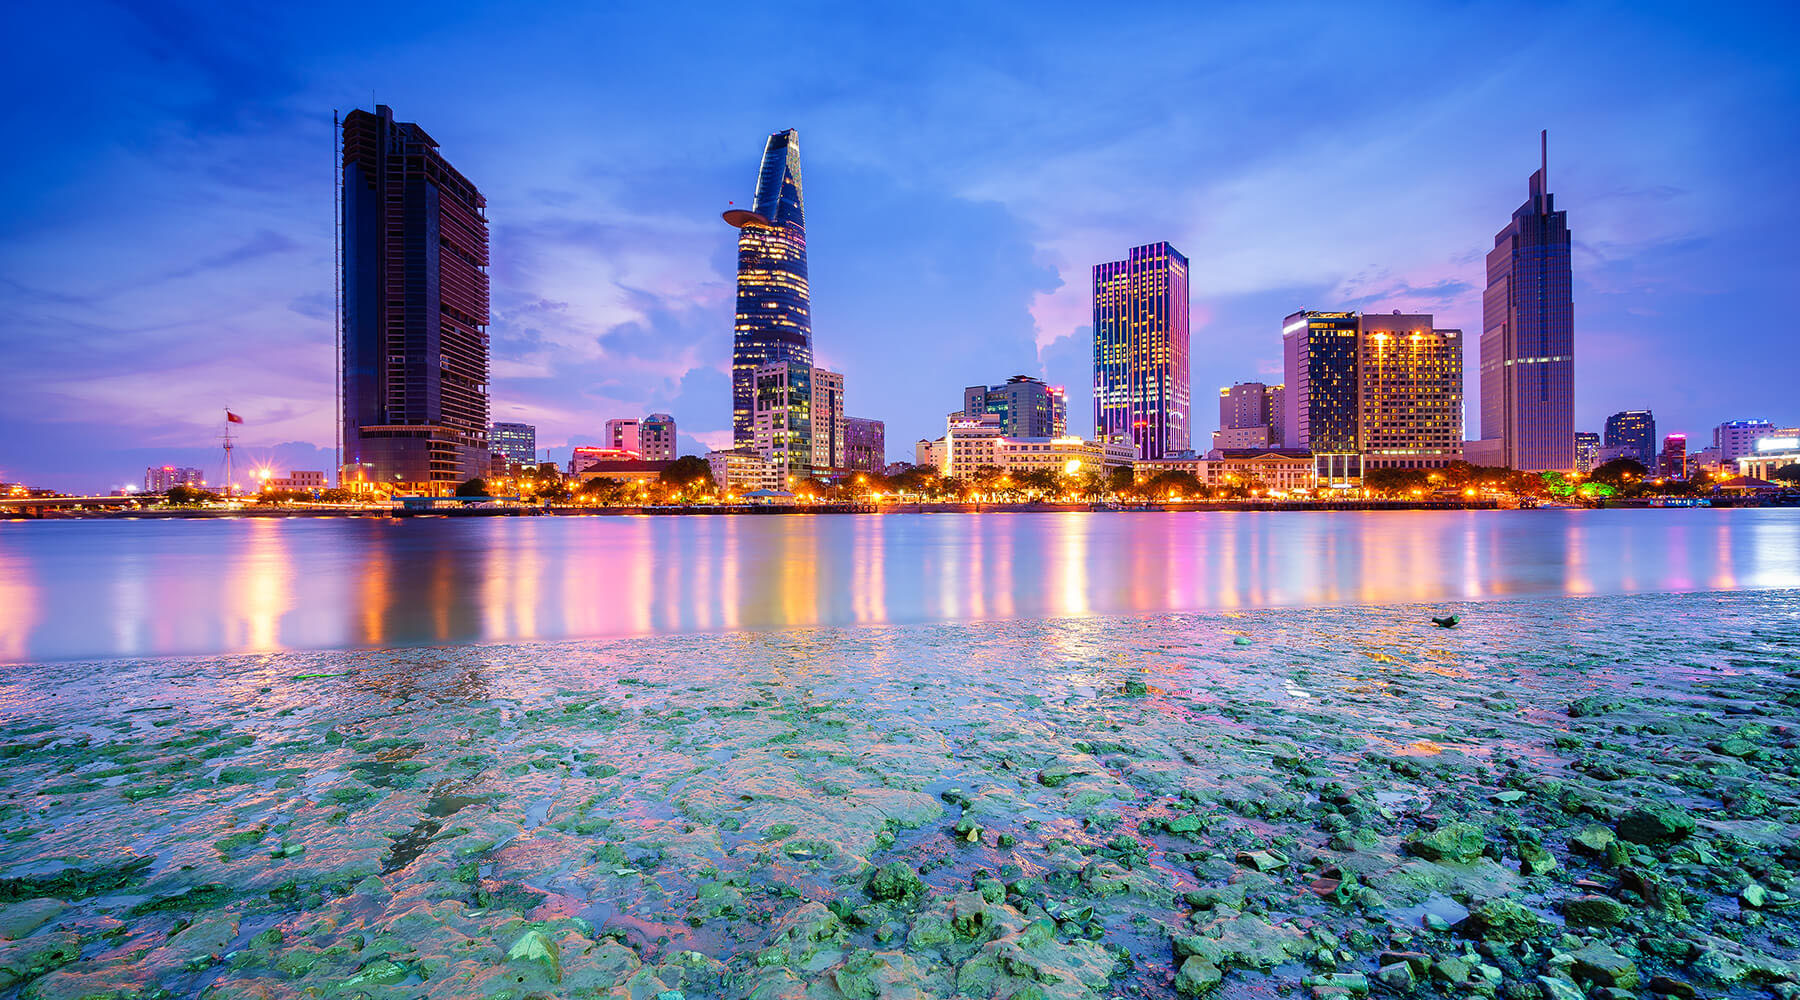 10 NIGHT THAILAND & VIETNAM VOYAGE